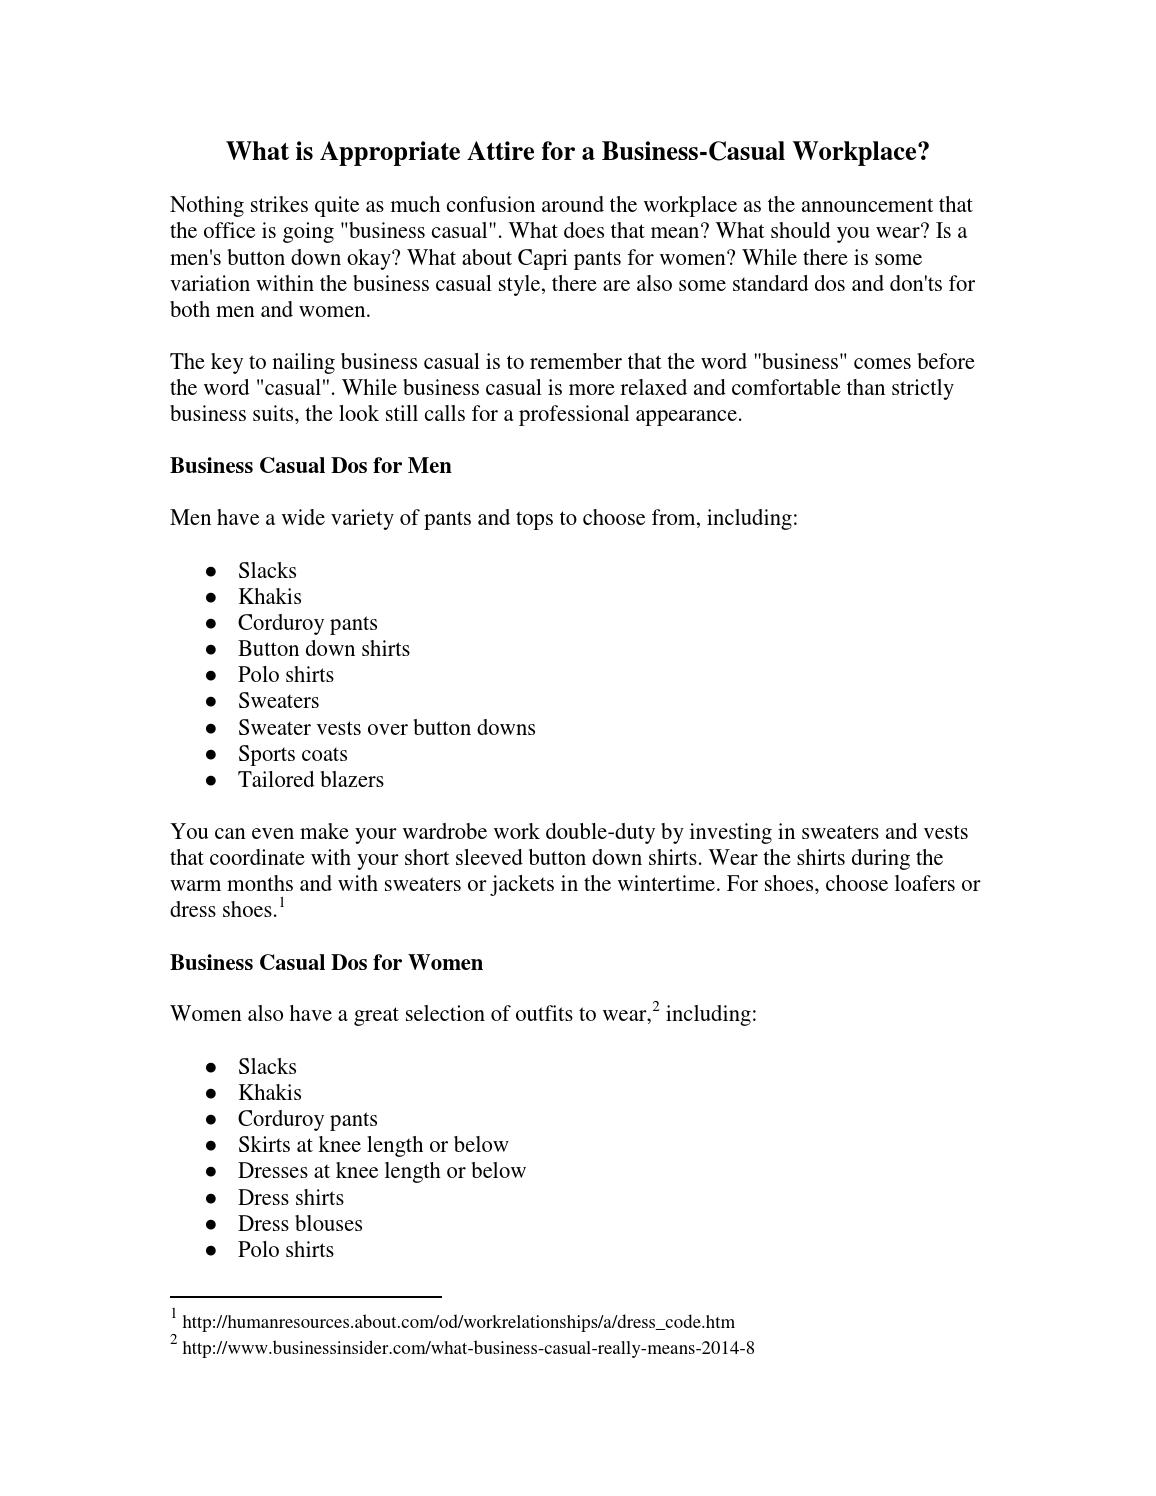 7ccf3e0a627 What is Appropriate Attire for a Business-Casual Workplace  by Prudential  Overall Supply - issuu